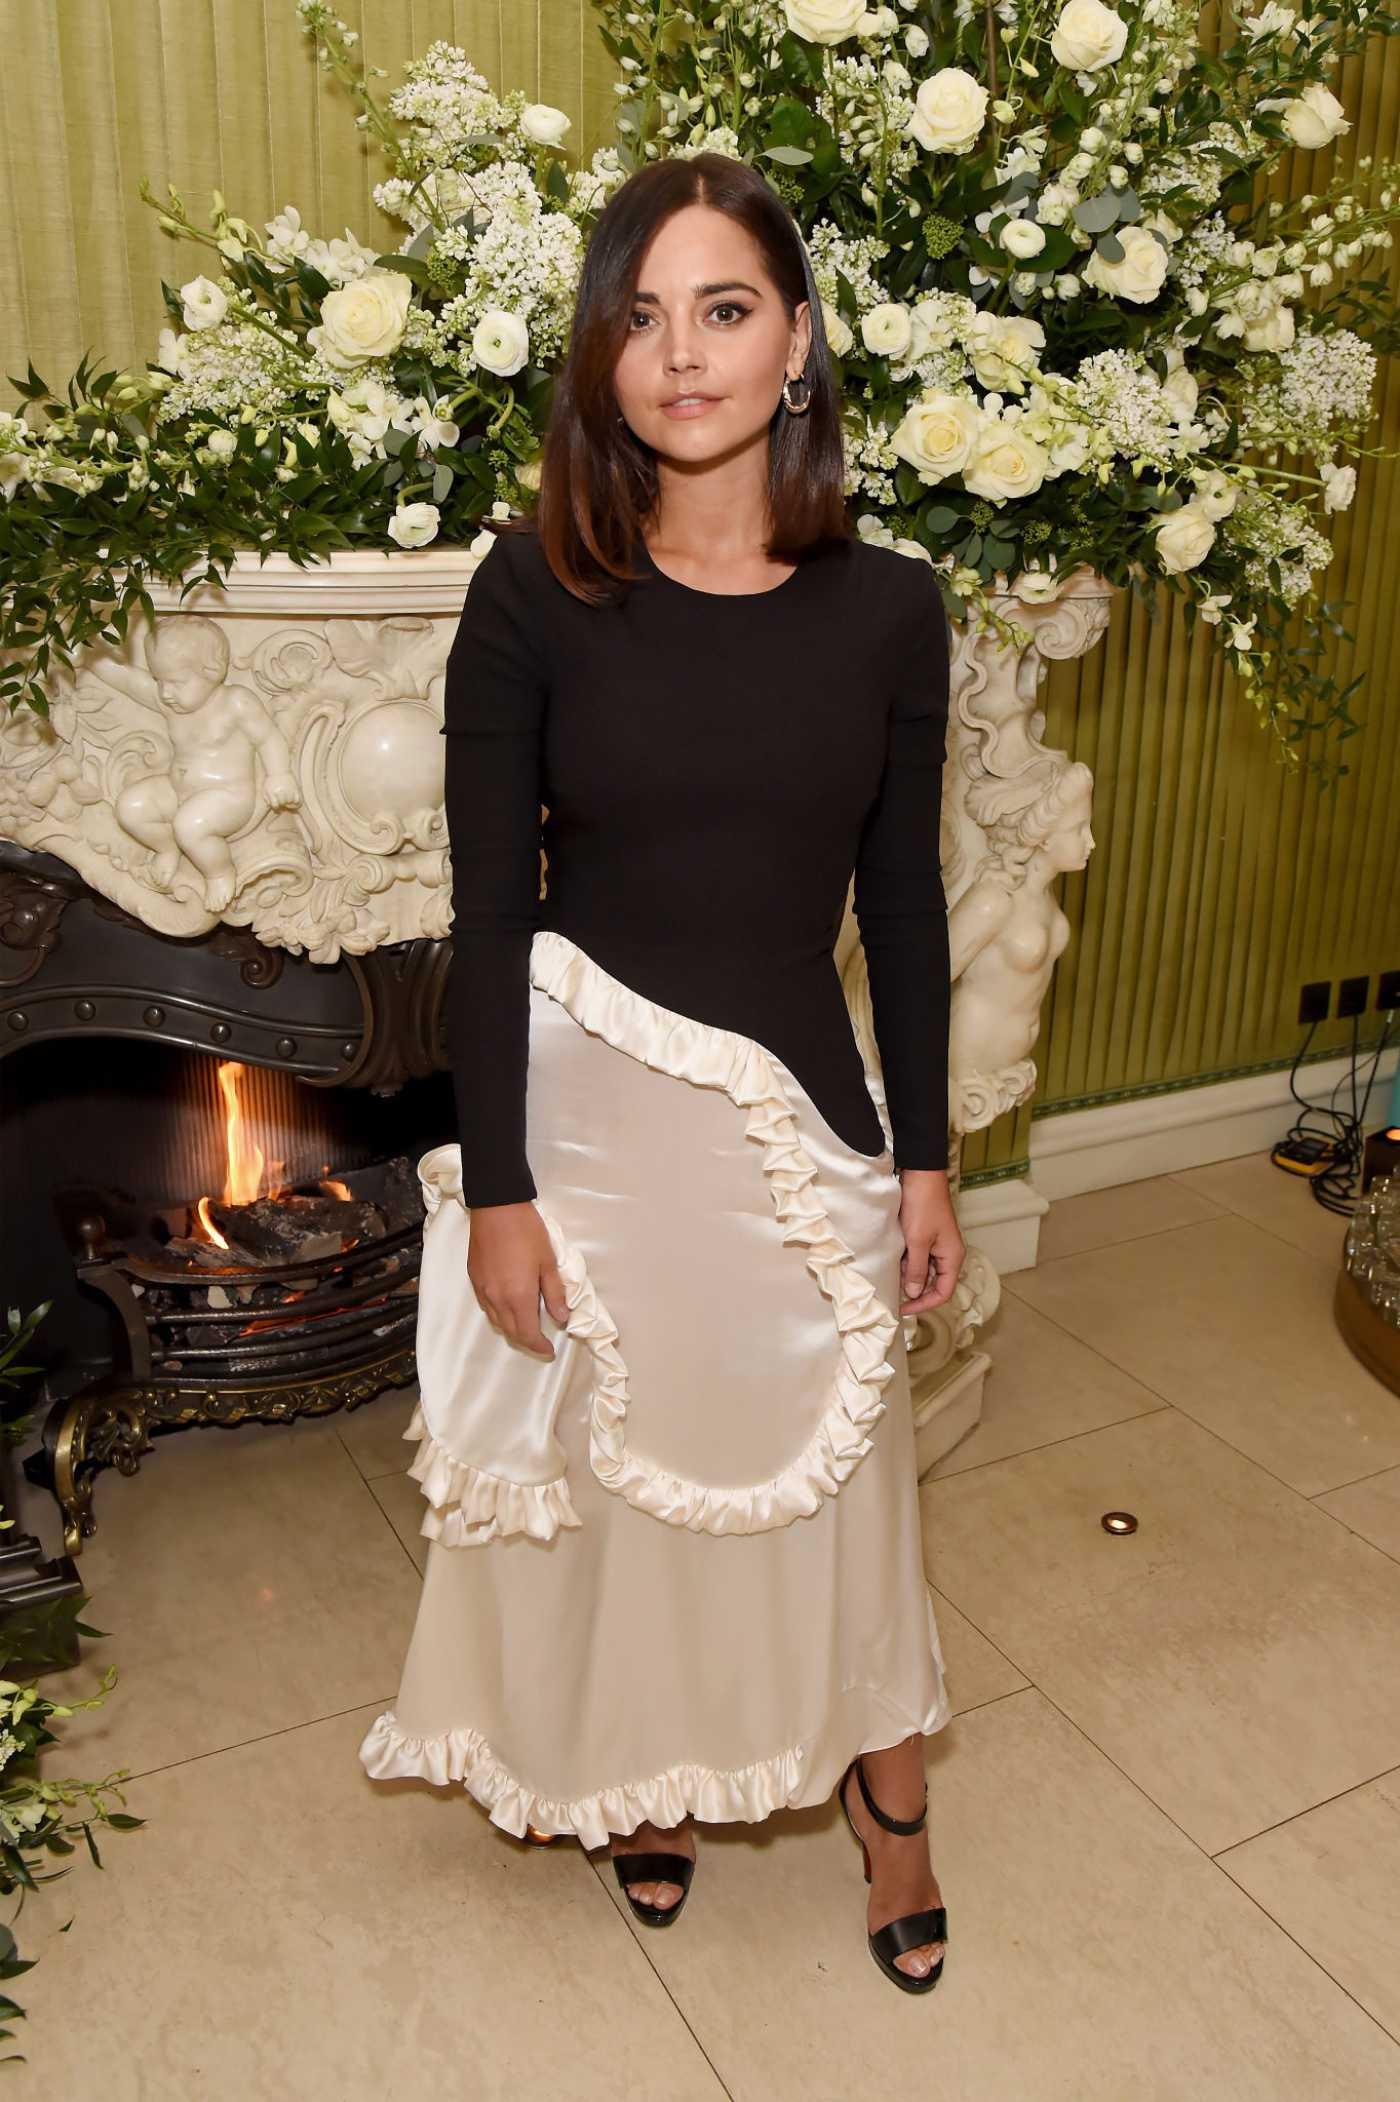 Jenna Coleman Attends 2020 Bafta Vogue x Tiffany Fashion and Film Afterparty in London 02/02/2020